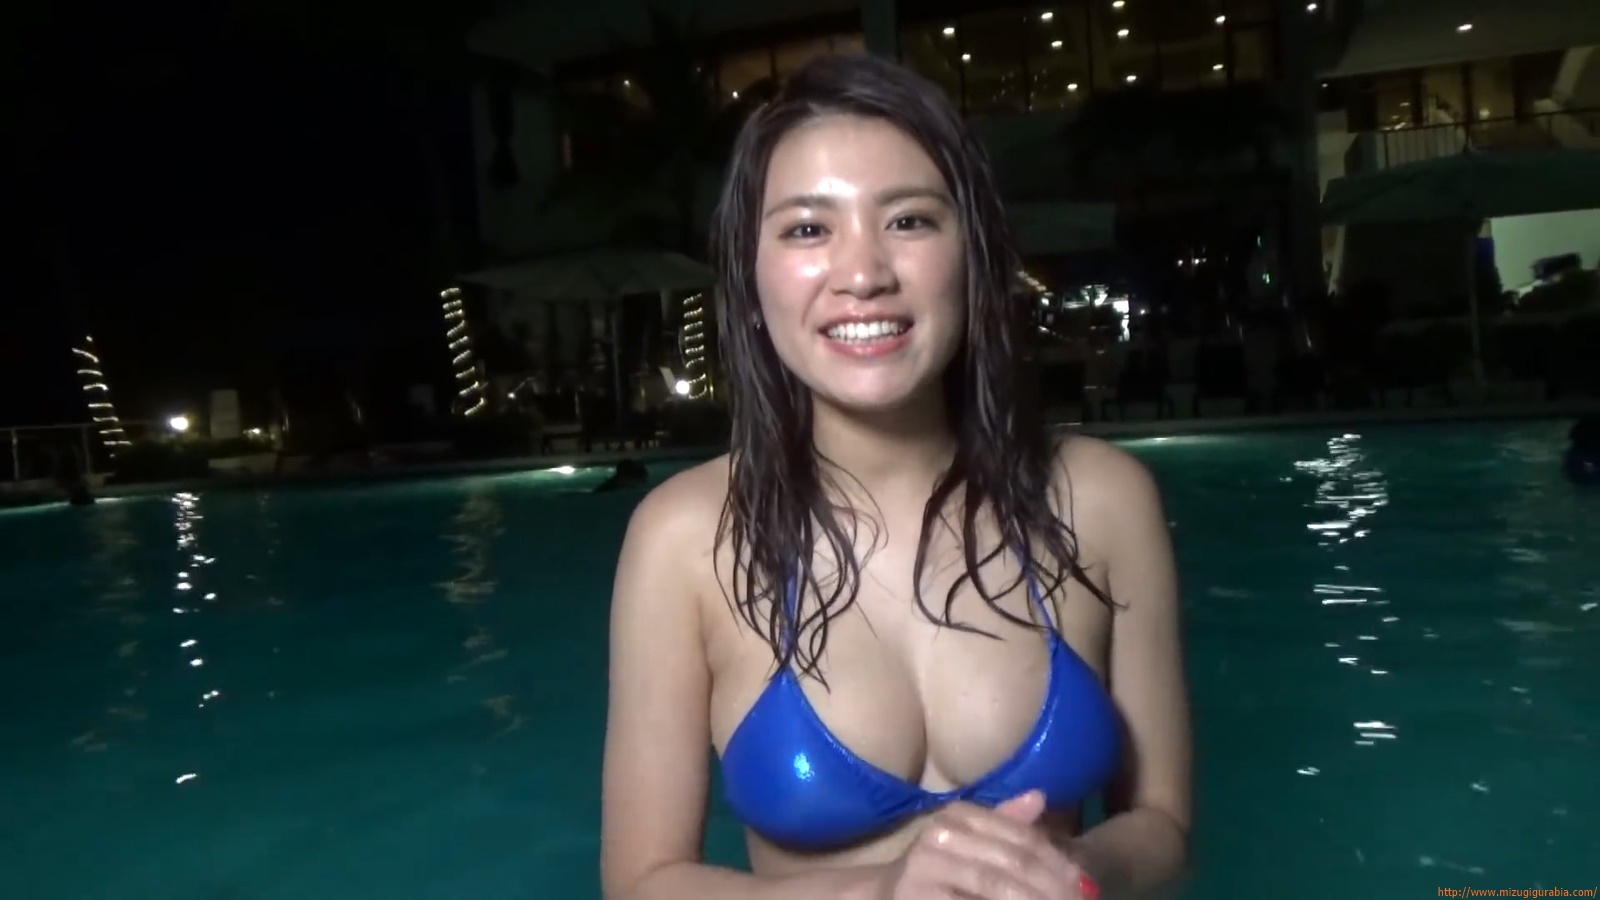 Shes a sunny bodice who continues to lead the way in gravure094